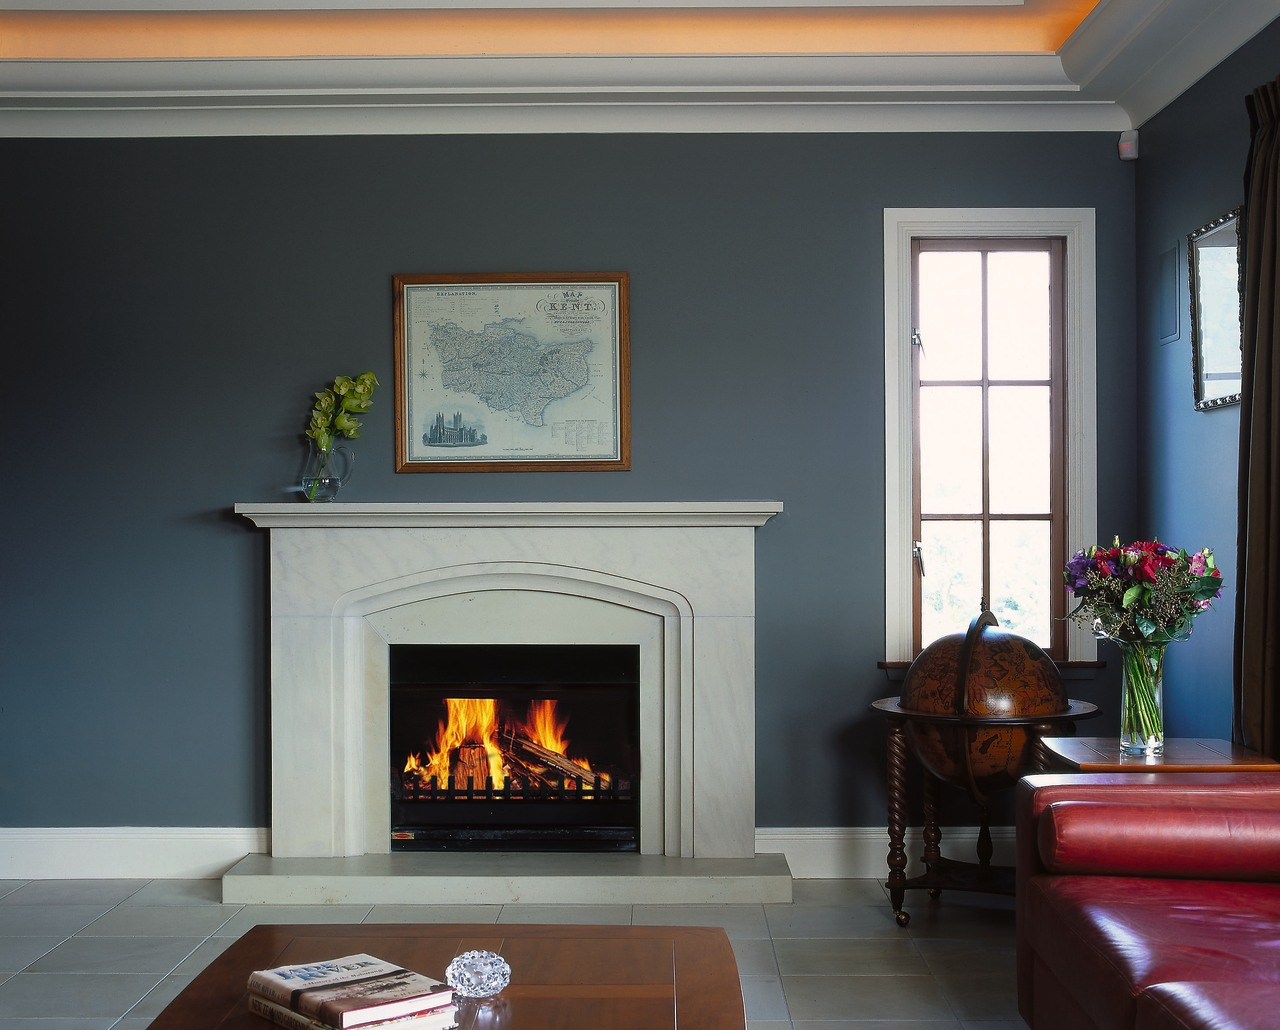 View of this lounge area fireplace, hearth, home, home appliance, interior design, living room, wood burning stove, black, gray